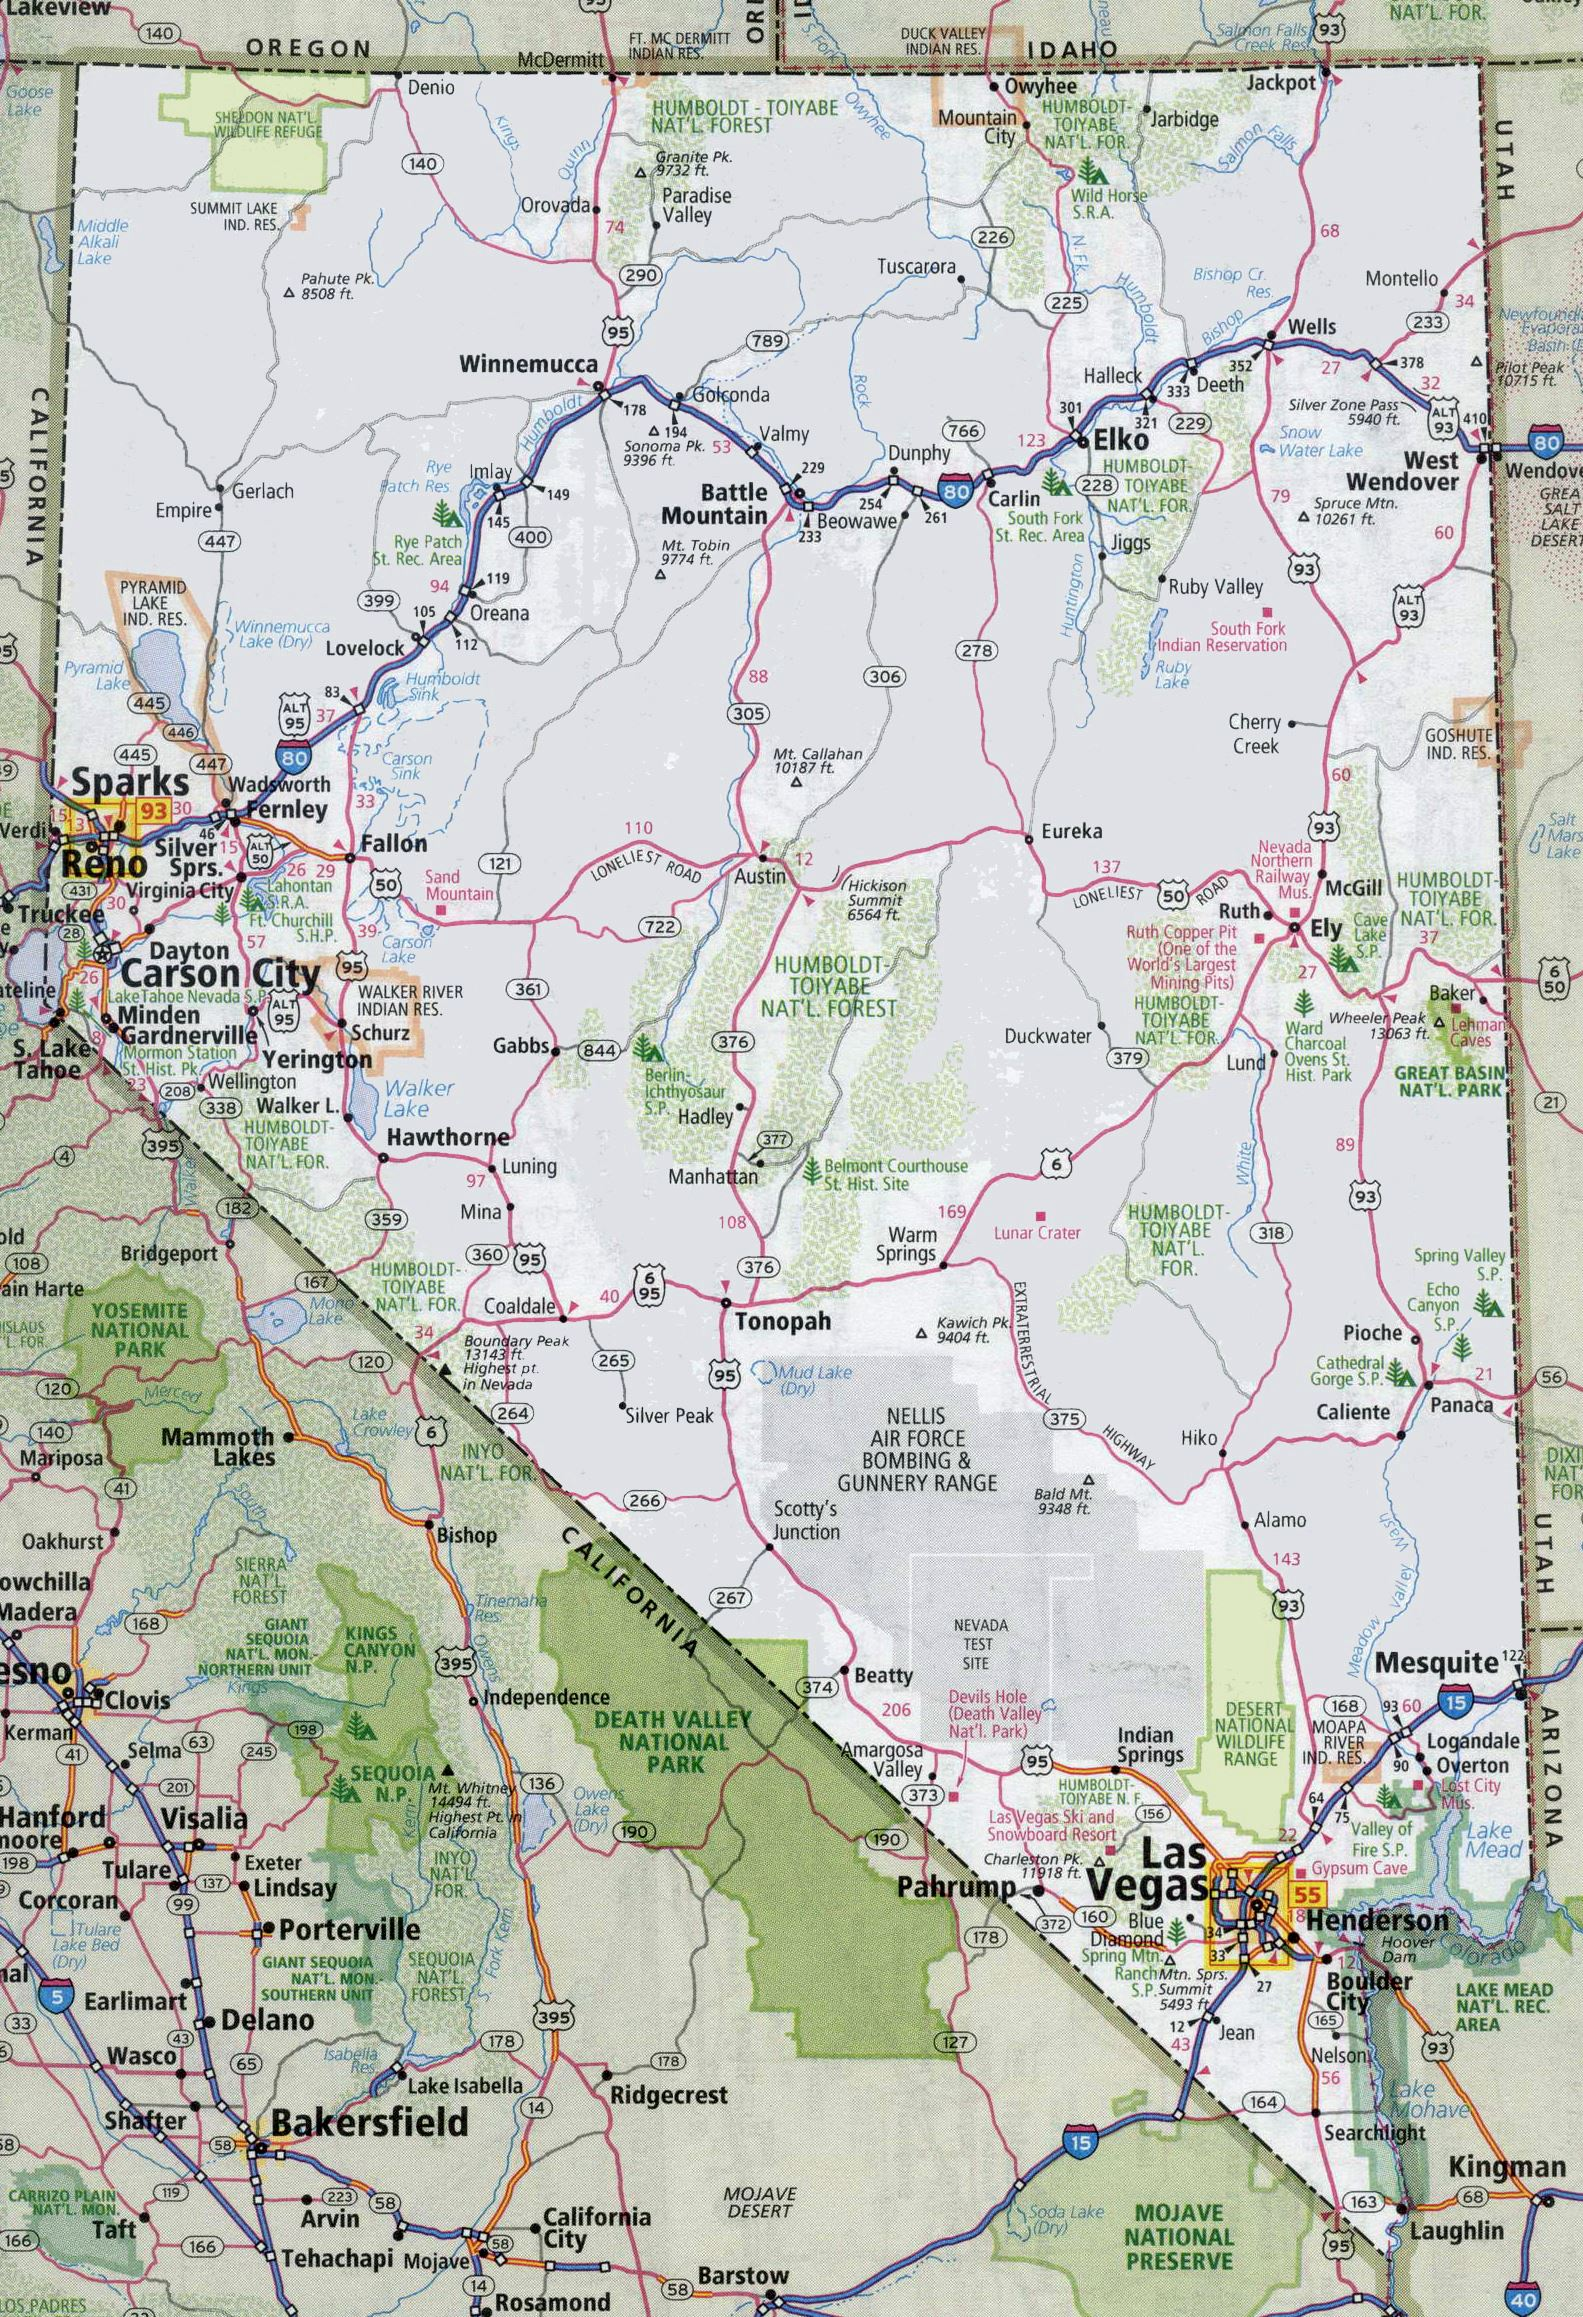 Large Nevada Maps for Free Download and Print | High-Resolution and ...